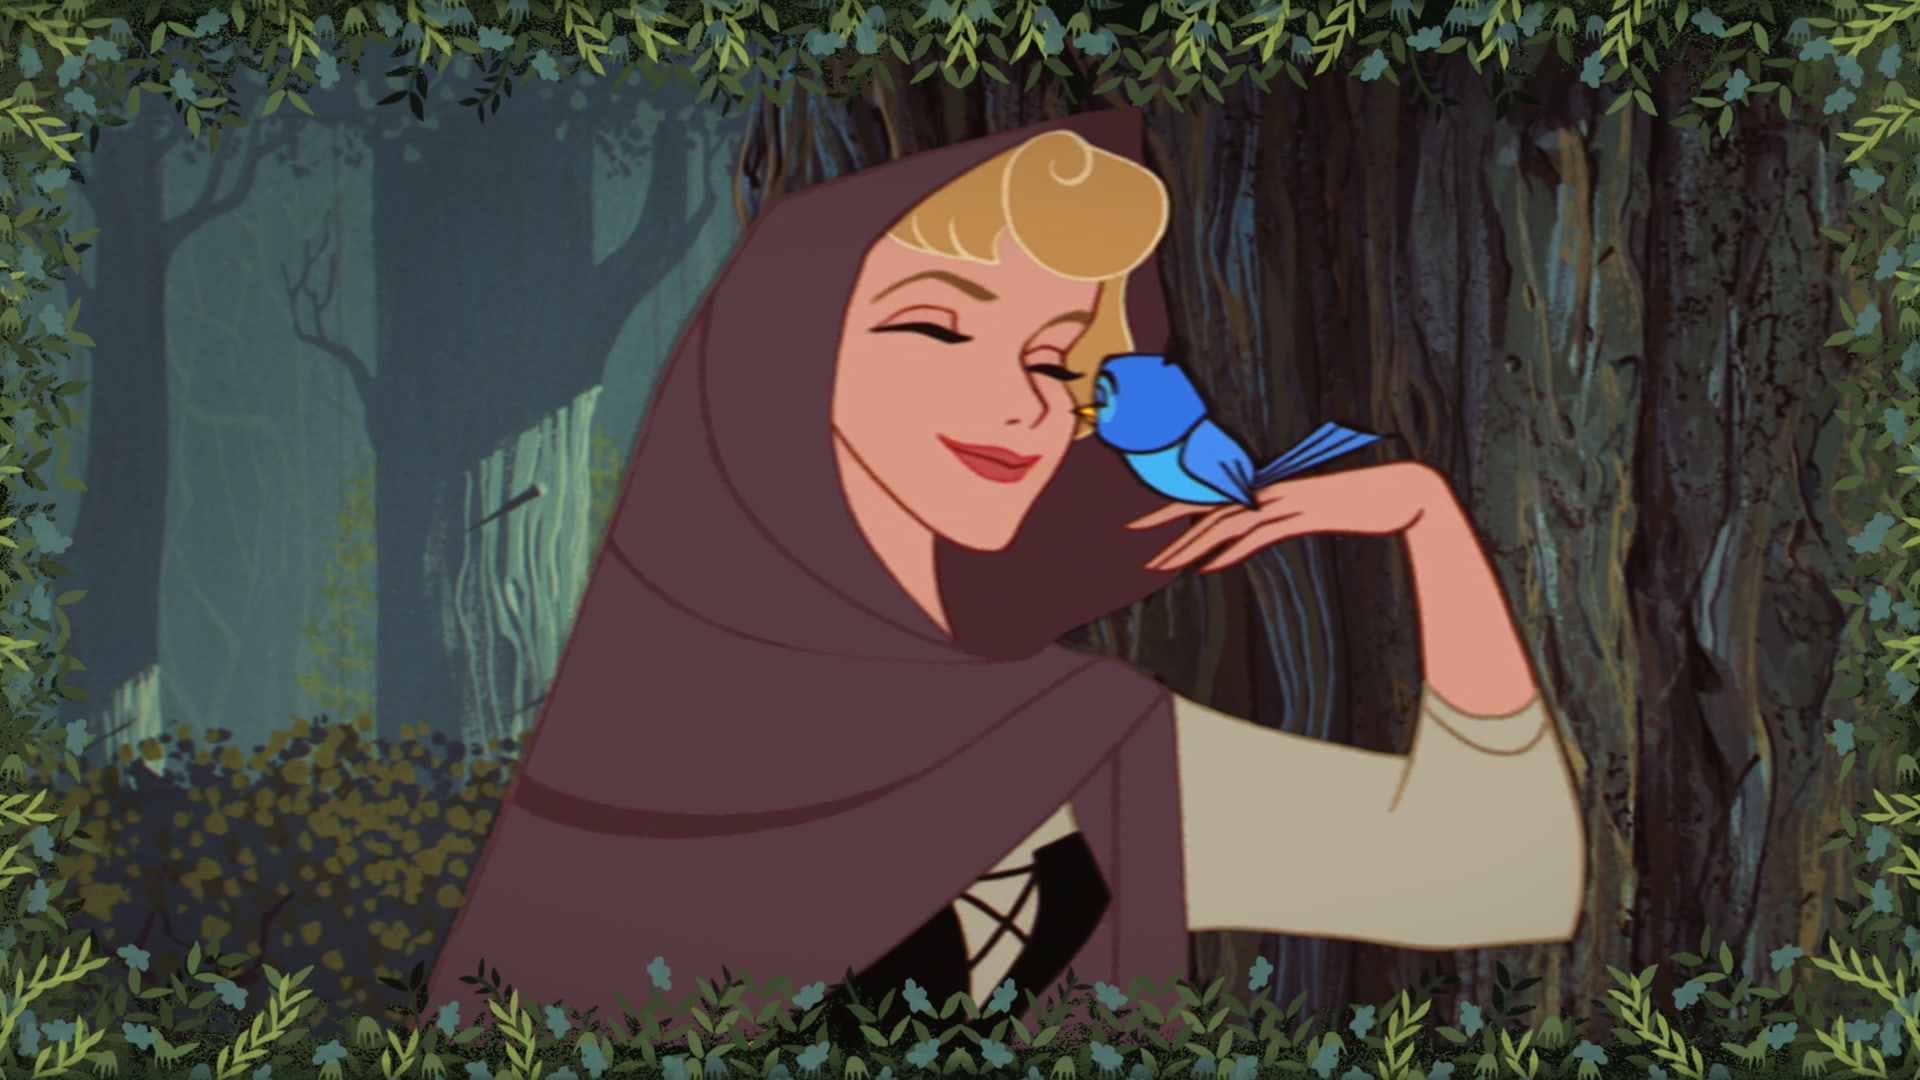 Spotlight on Sleeping Beauty | Disney